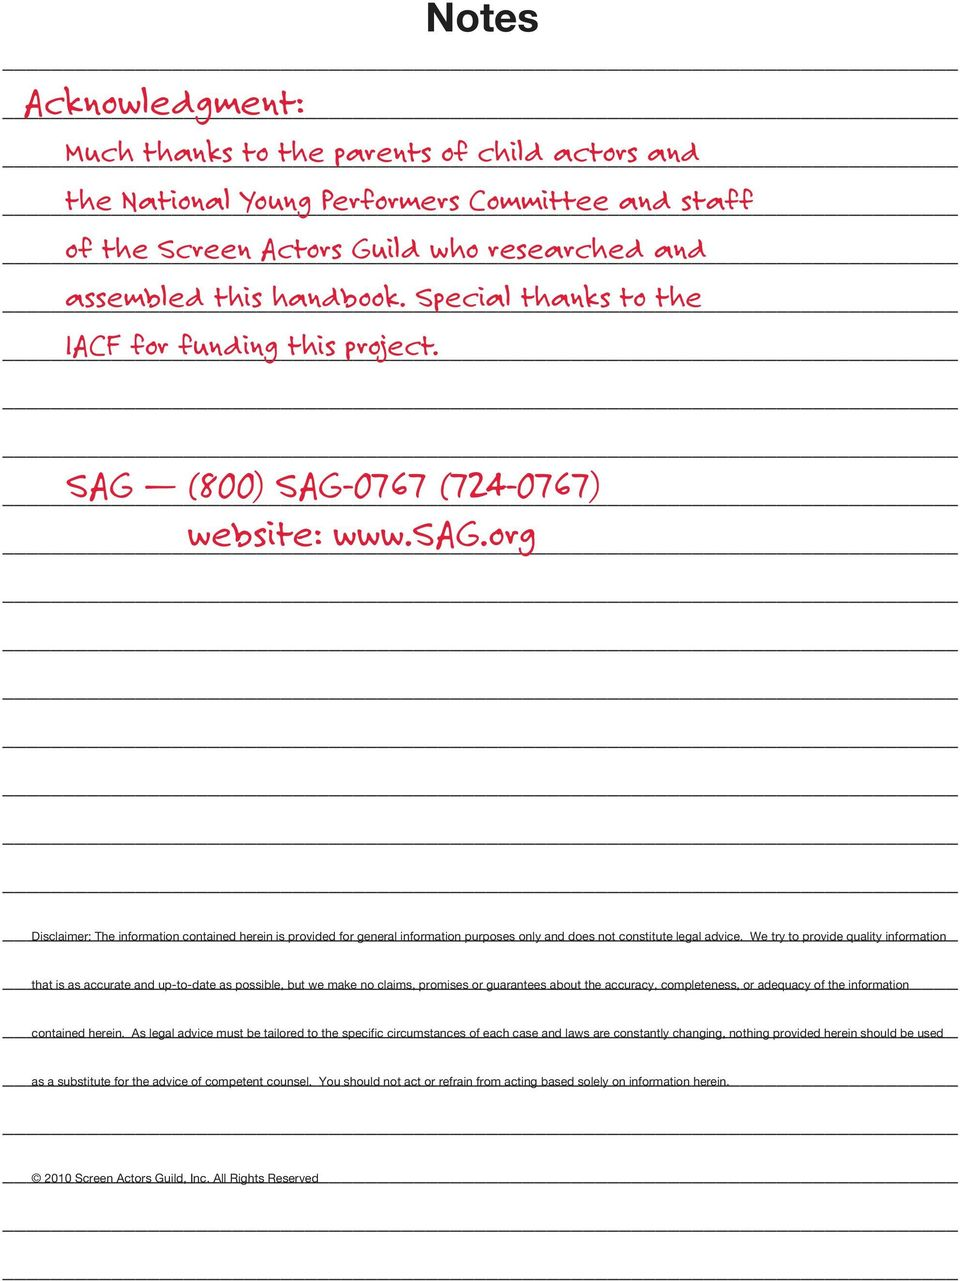 Young Performers Handbook - PDF